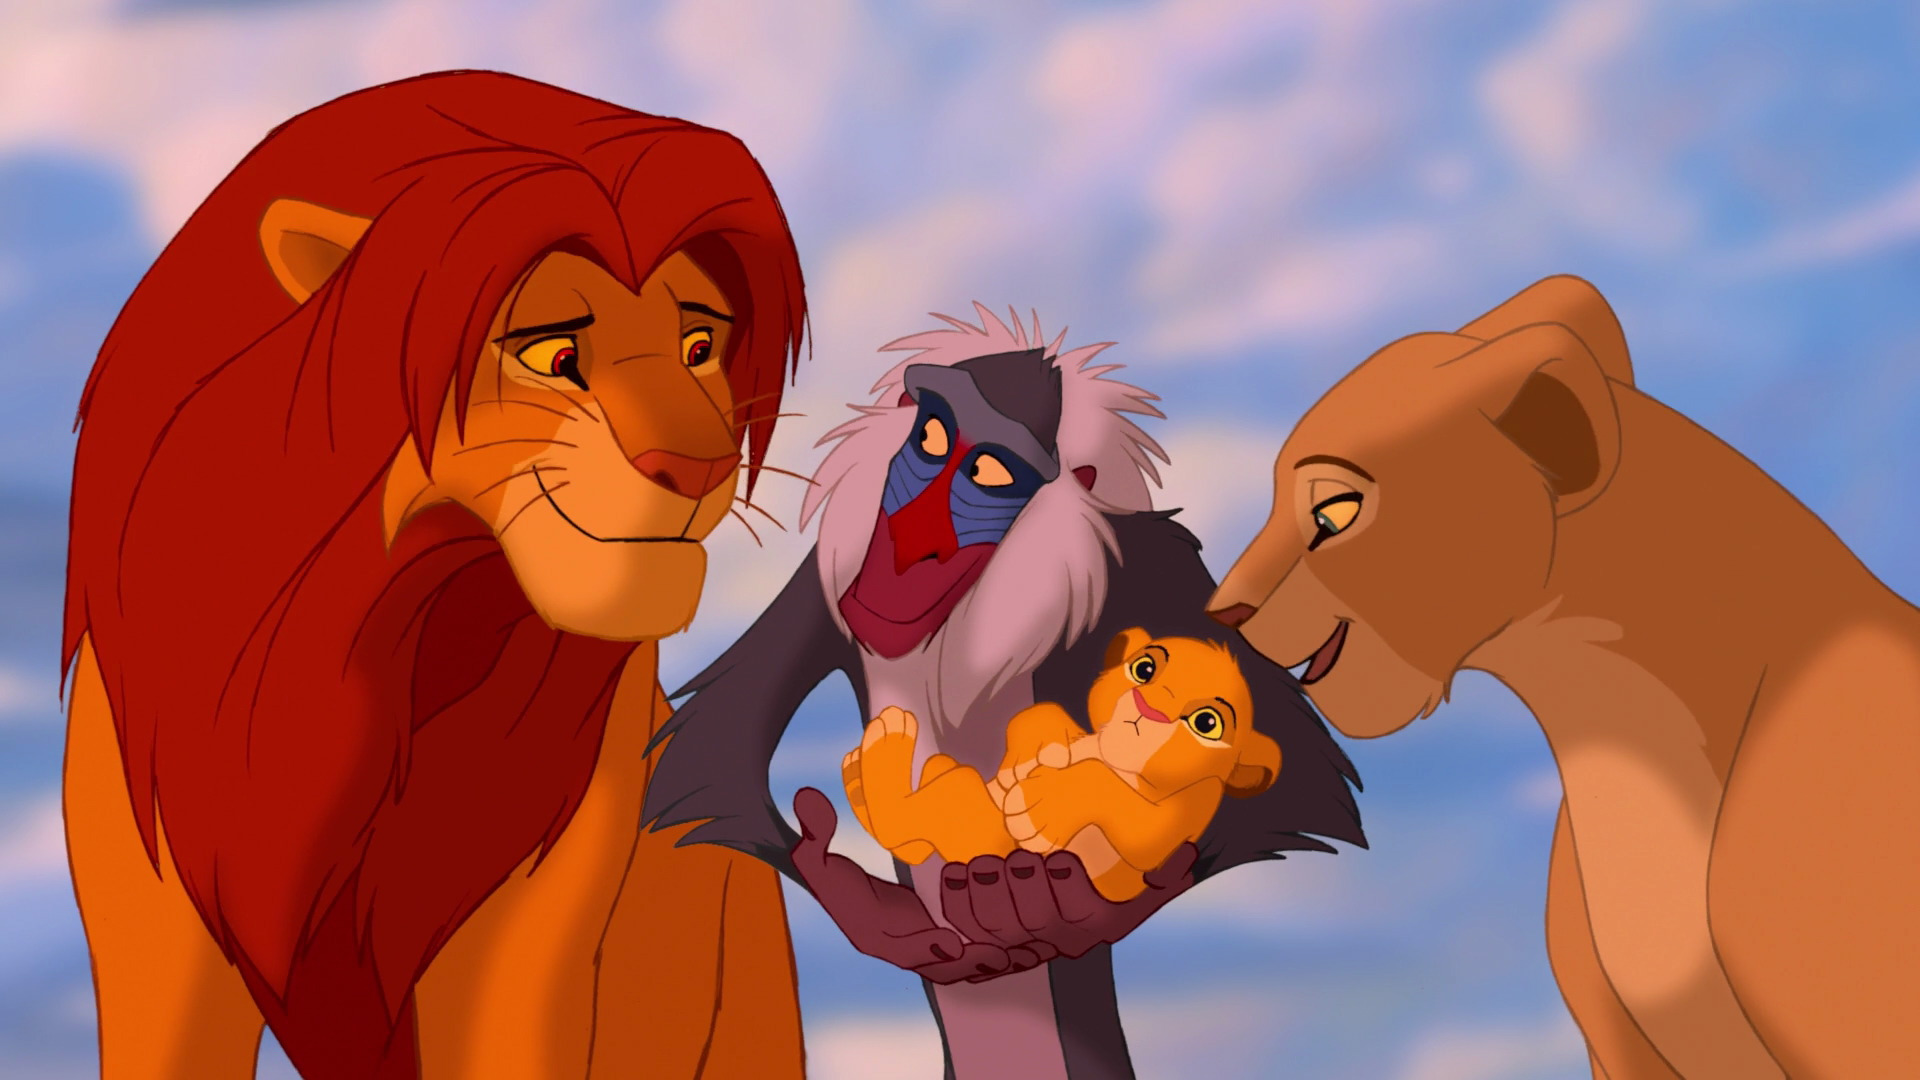 Lion King Disneyscreencaps.com 9882